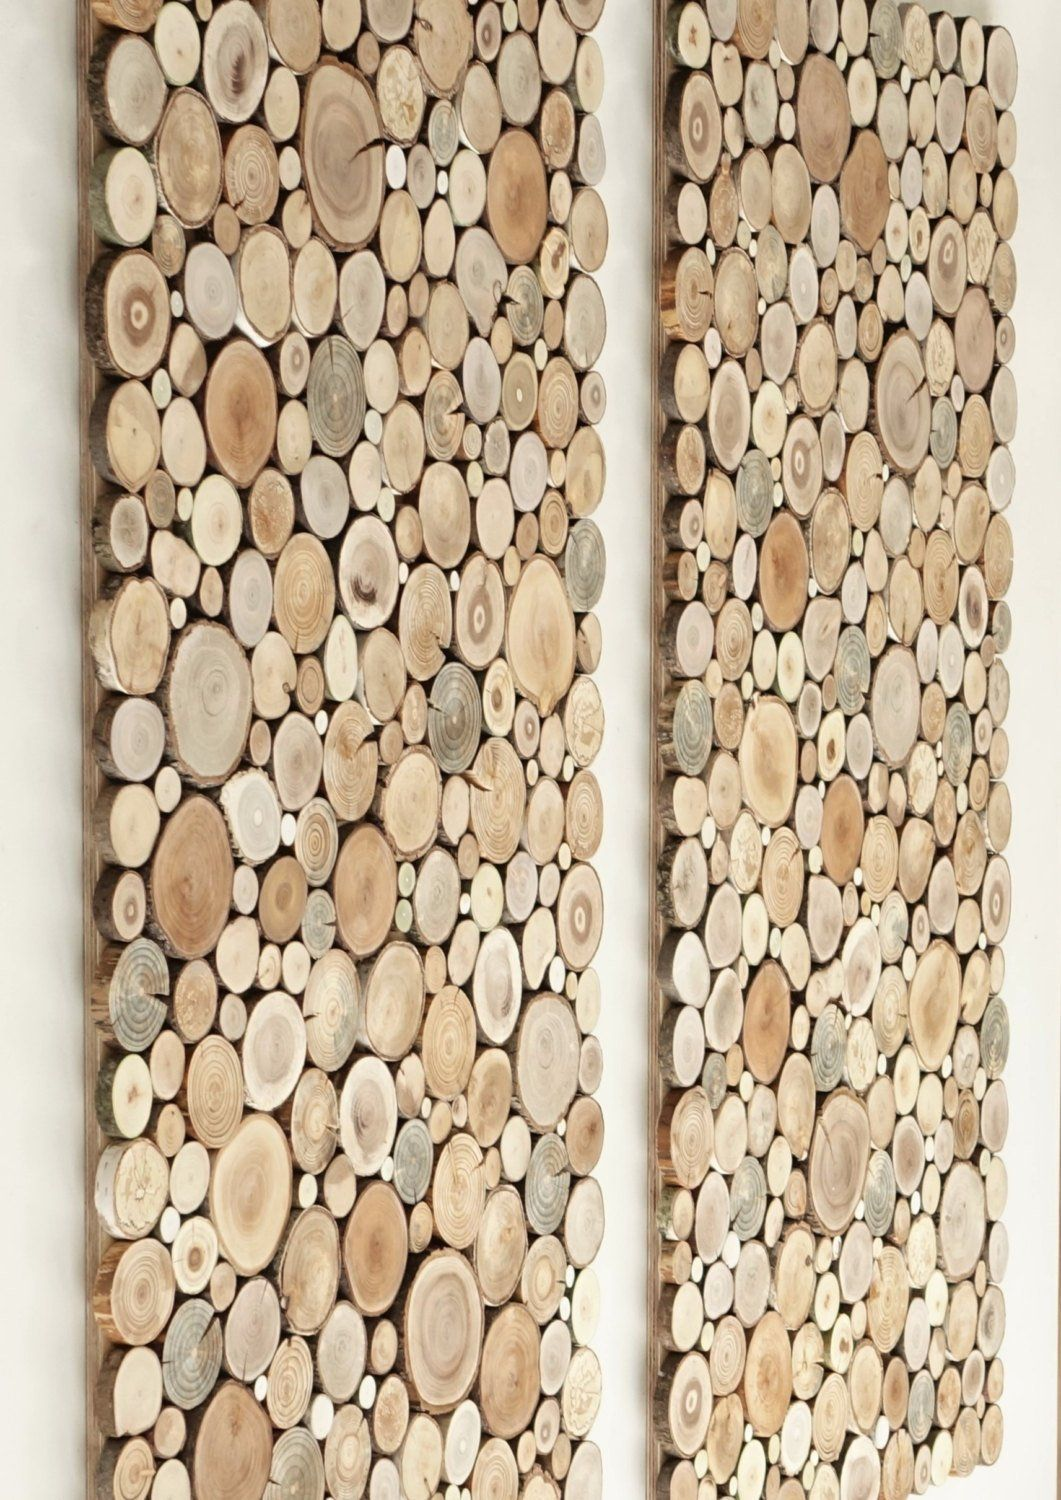 Wooden wall art uk a set of tree rounds decor tree slice wall